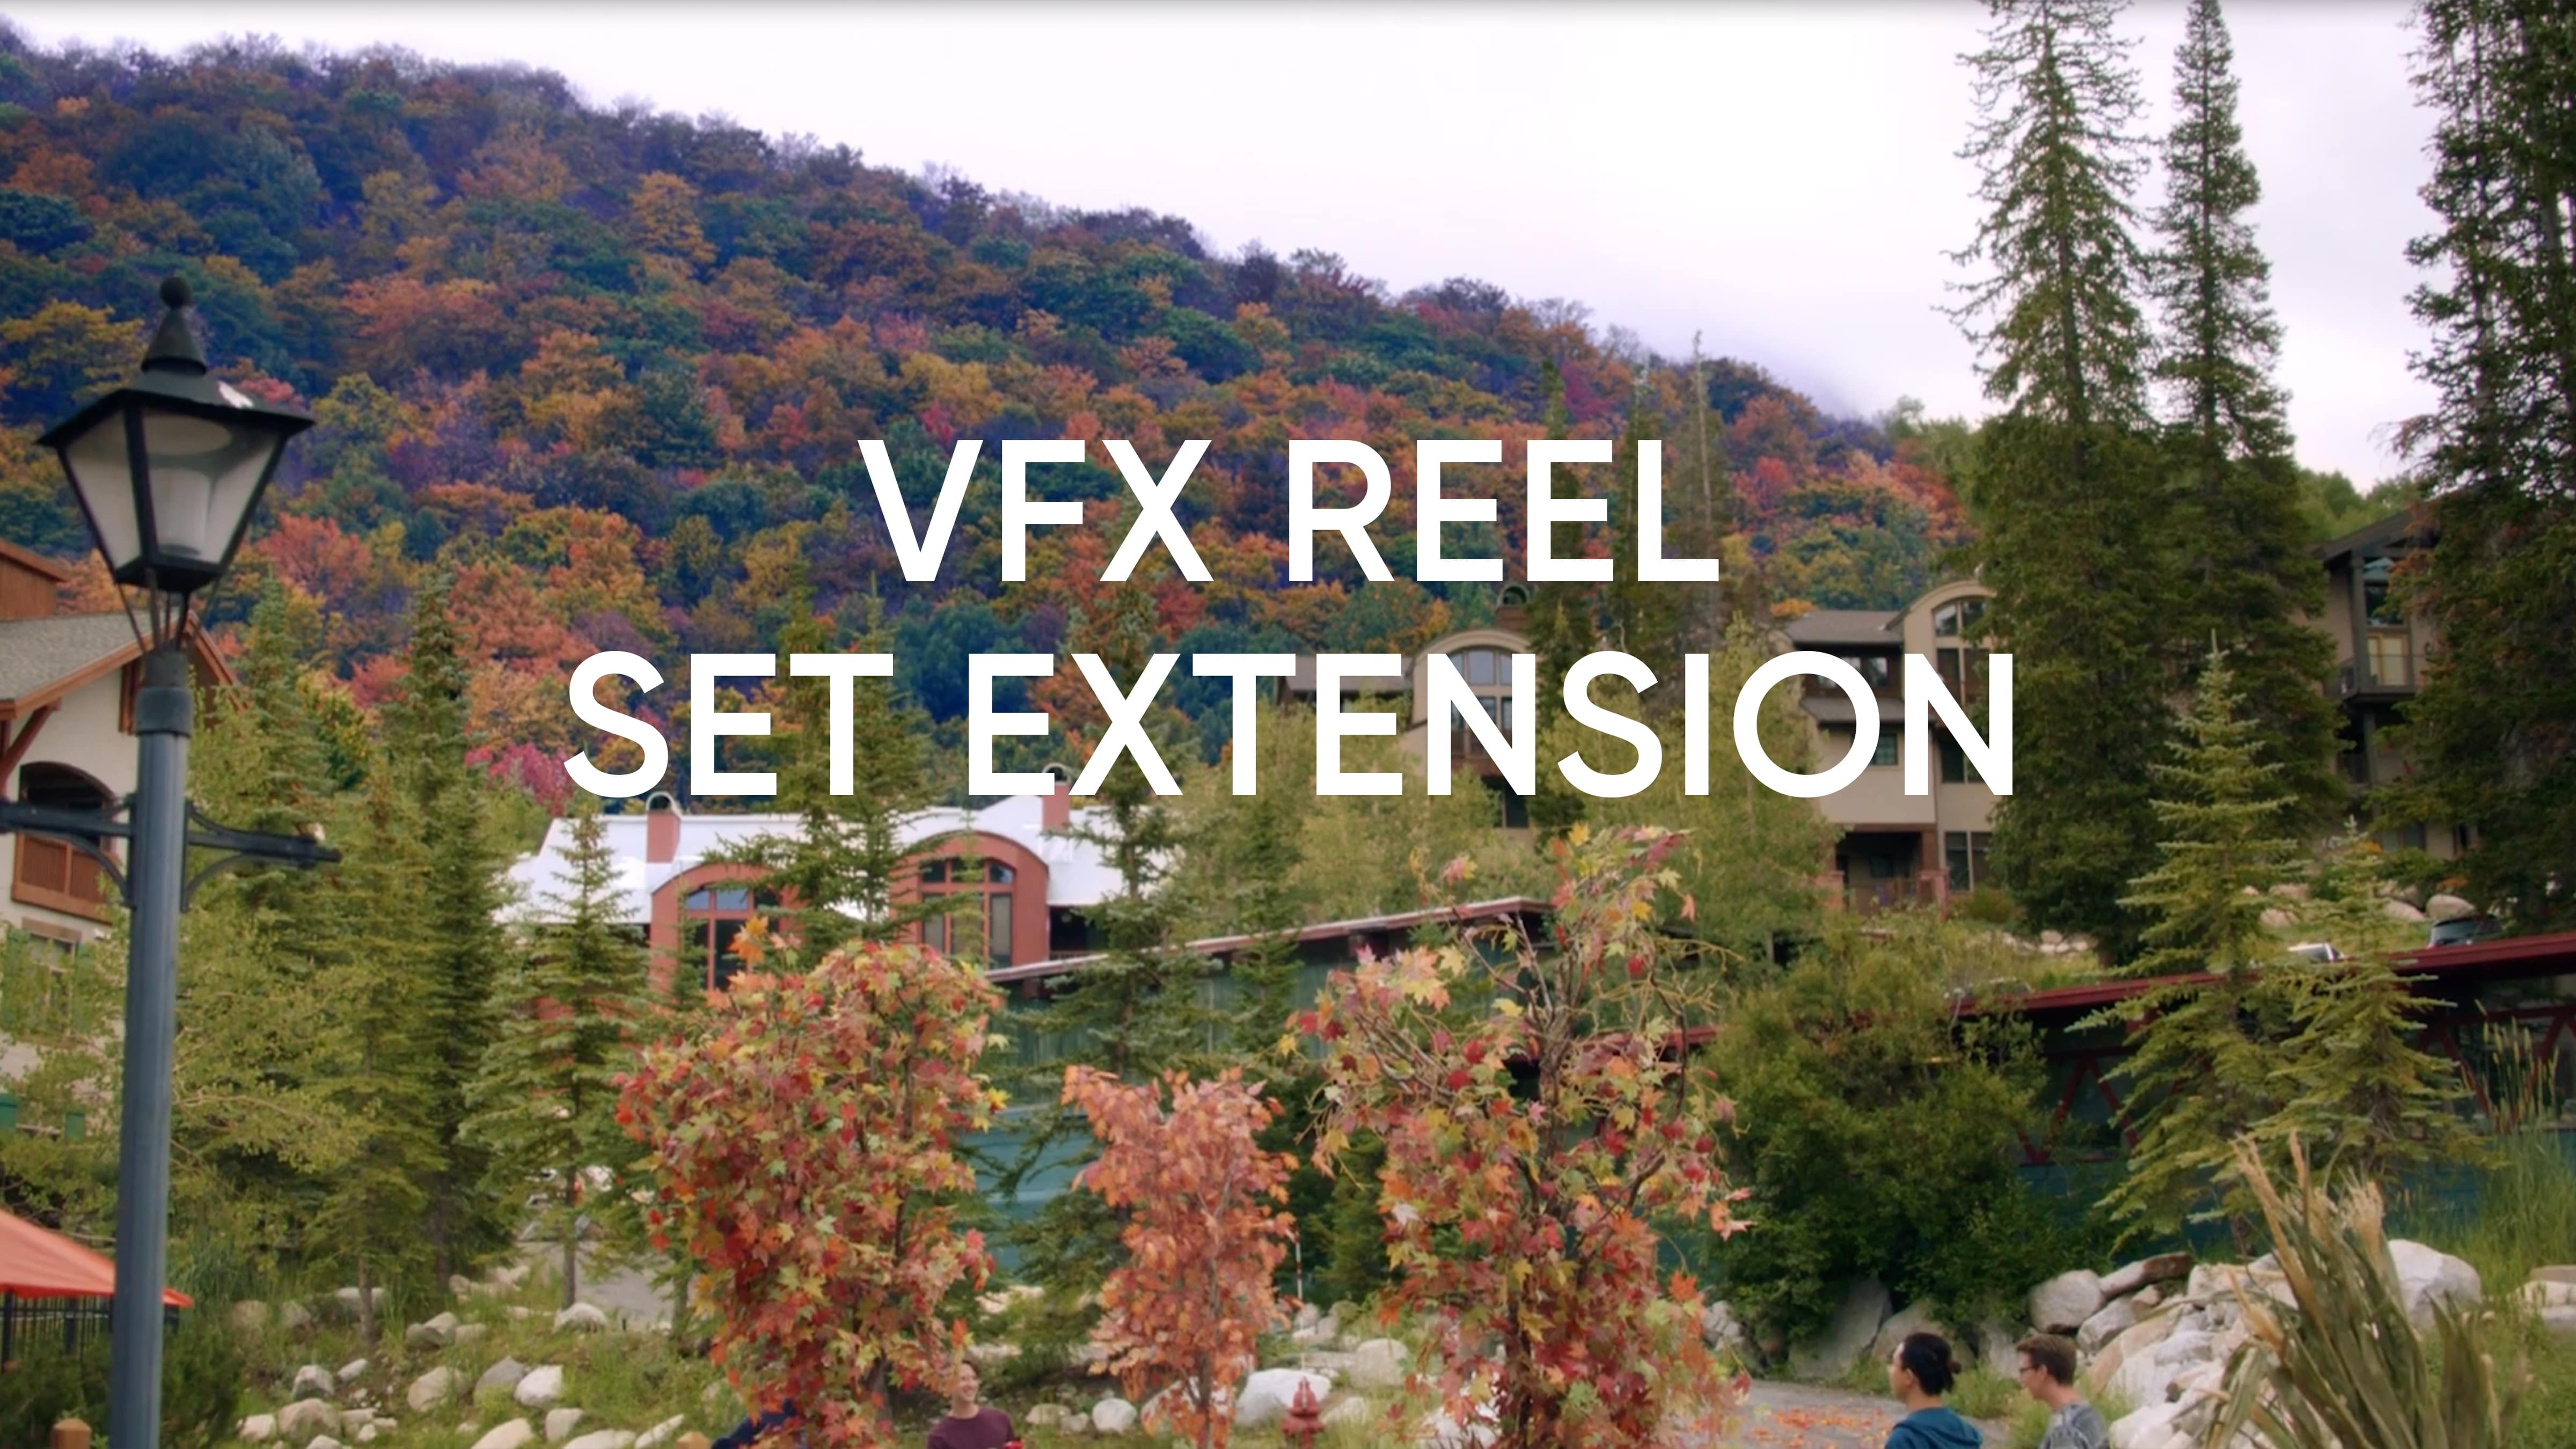 A set of different examples of how cosmic VFX makes summer in Utah look like fall by adding pumpkins, fall colored leaves, and more.